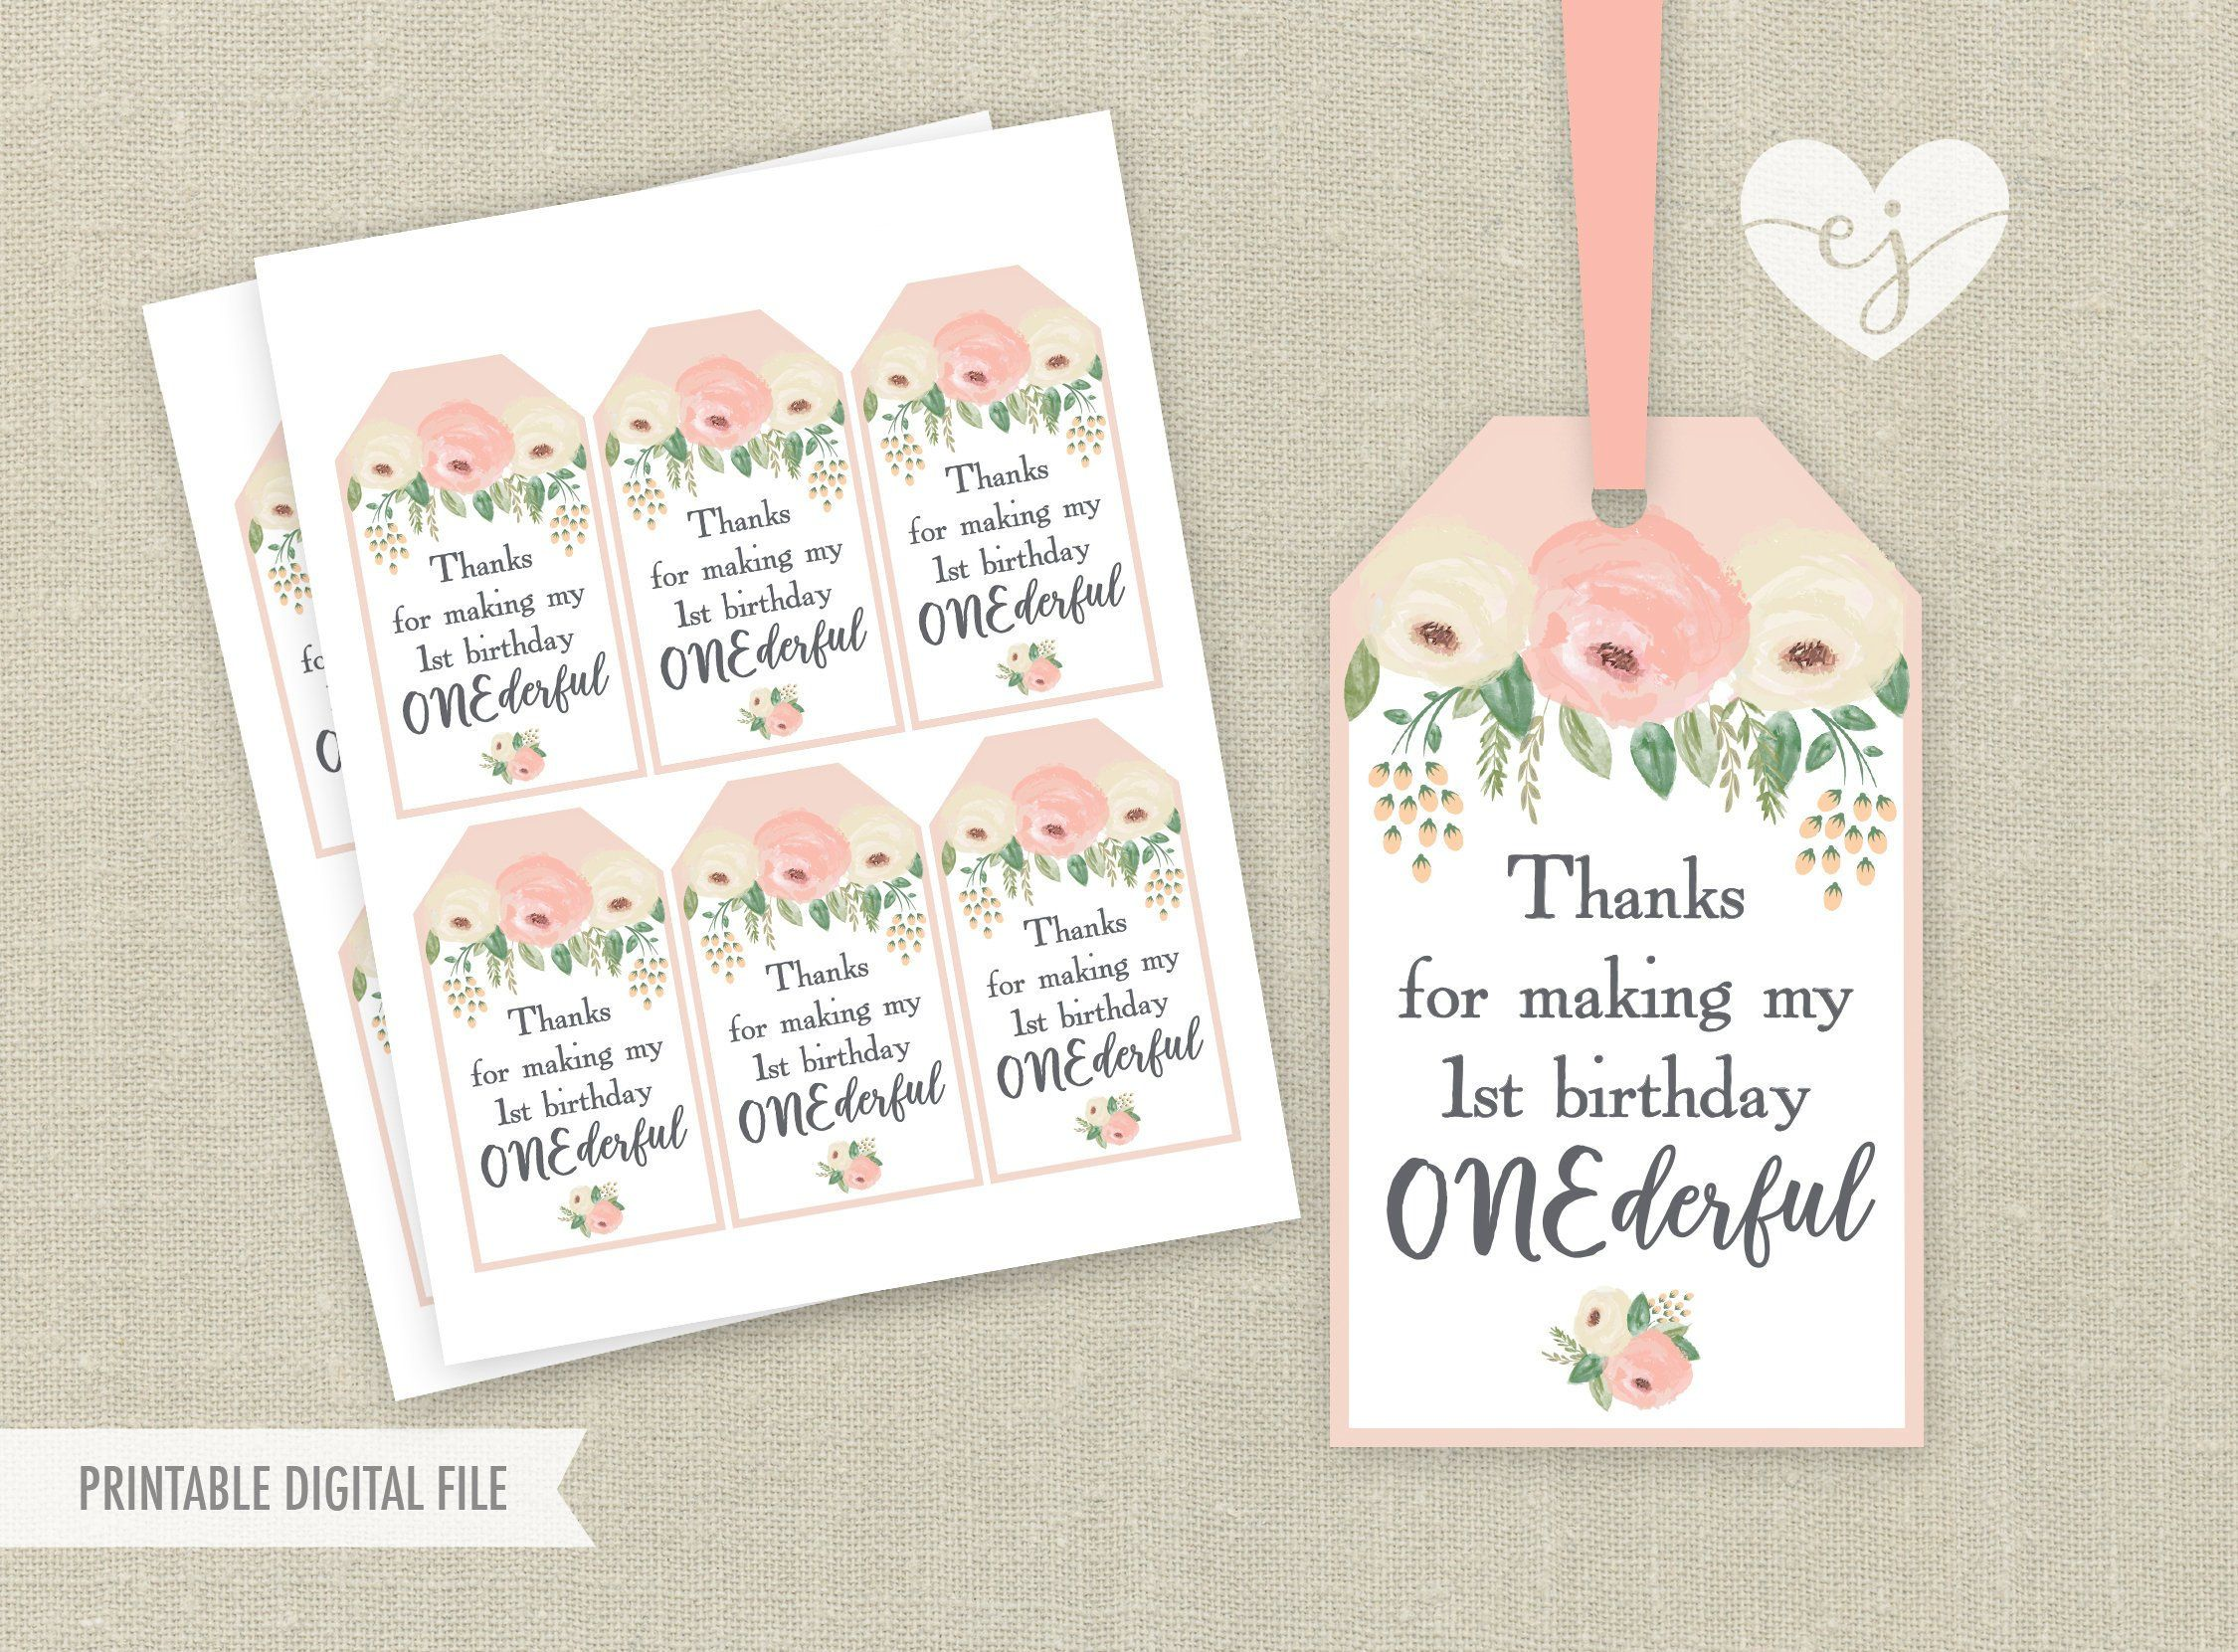 Onederful Favor Tags Printable Favor Tags Onederful Birthday Etsy In 2021 First Birthday Favors Birthday Favors First Birthday Party Favor